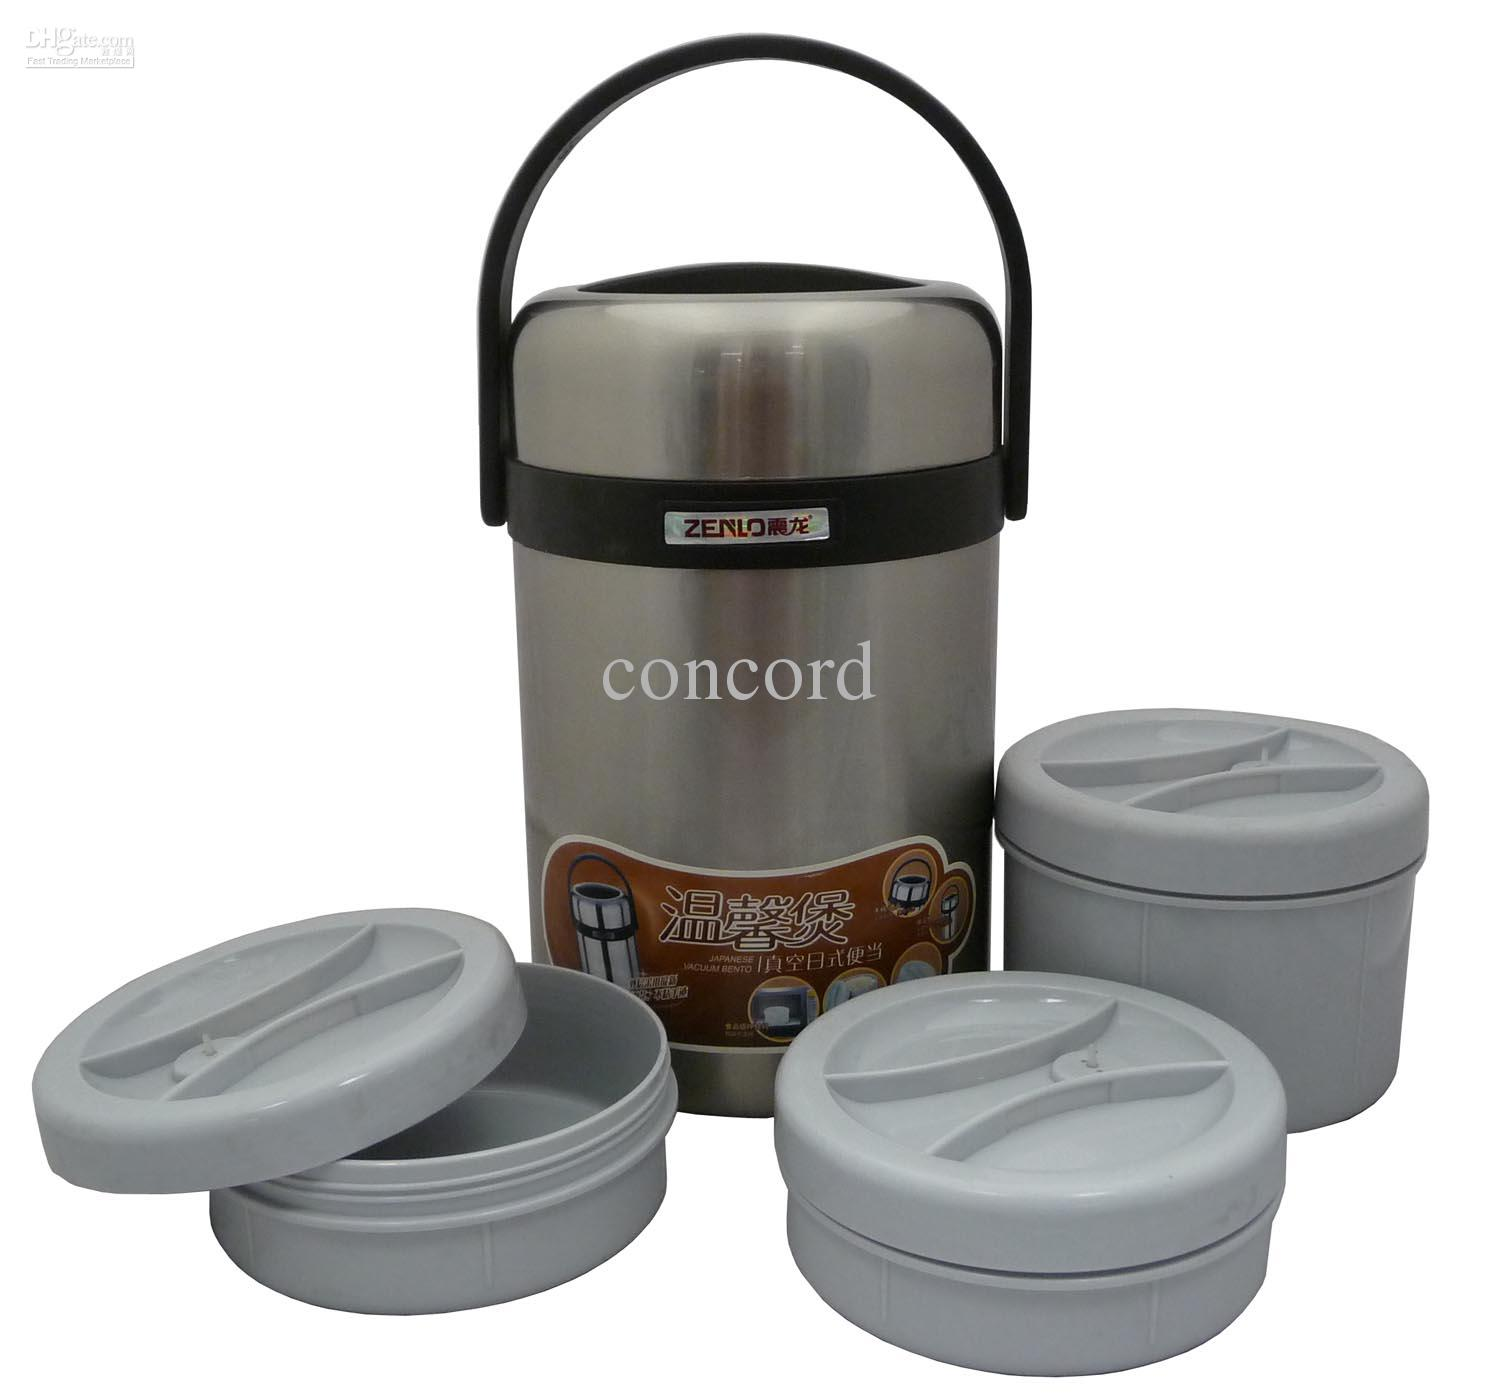 ZENLO 2 Li Jumbo Bento Stainless Steel Vacuum Lunch Jar Box Container XL  Sized Lunch Jar Online With $27.33/Set On Concordu0027s Store | DHgate.com